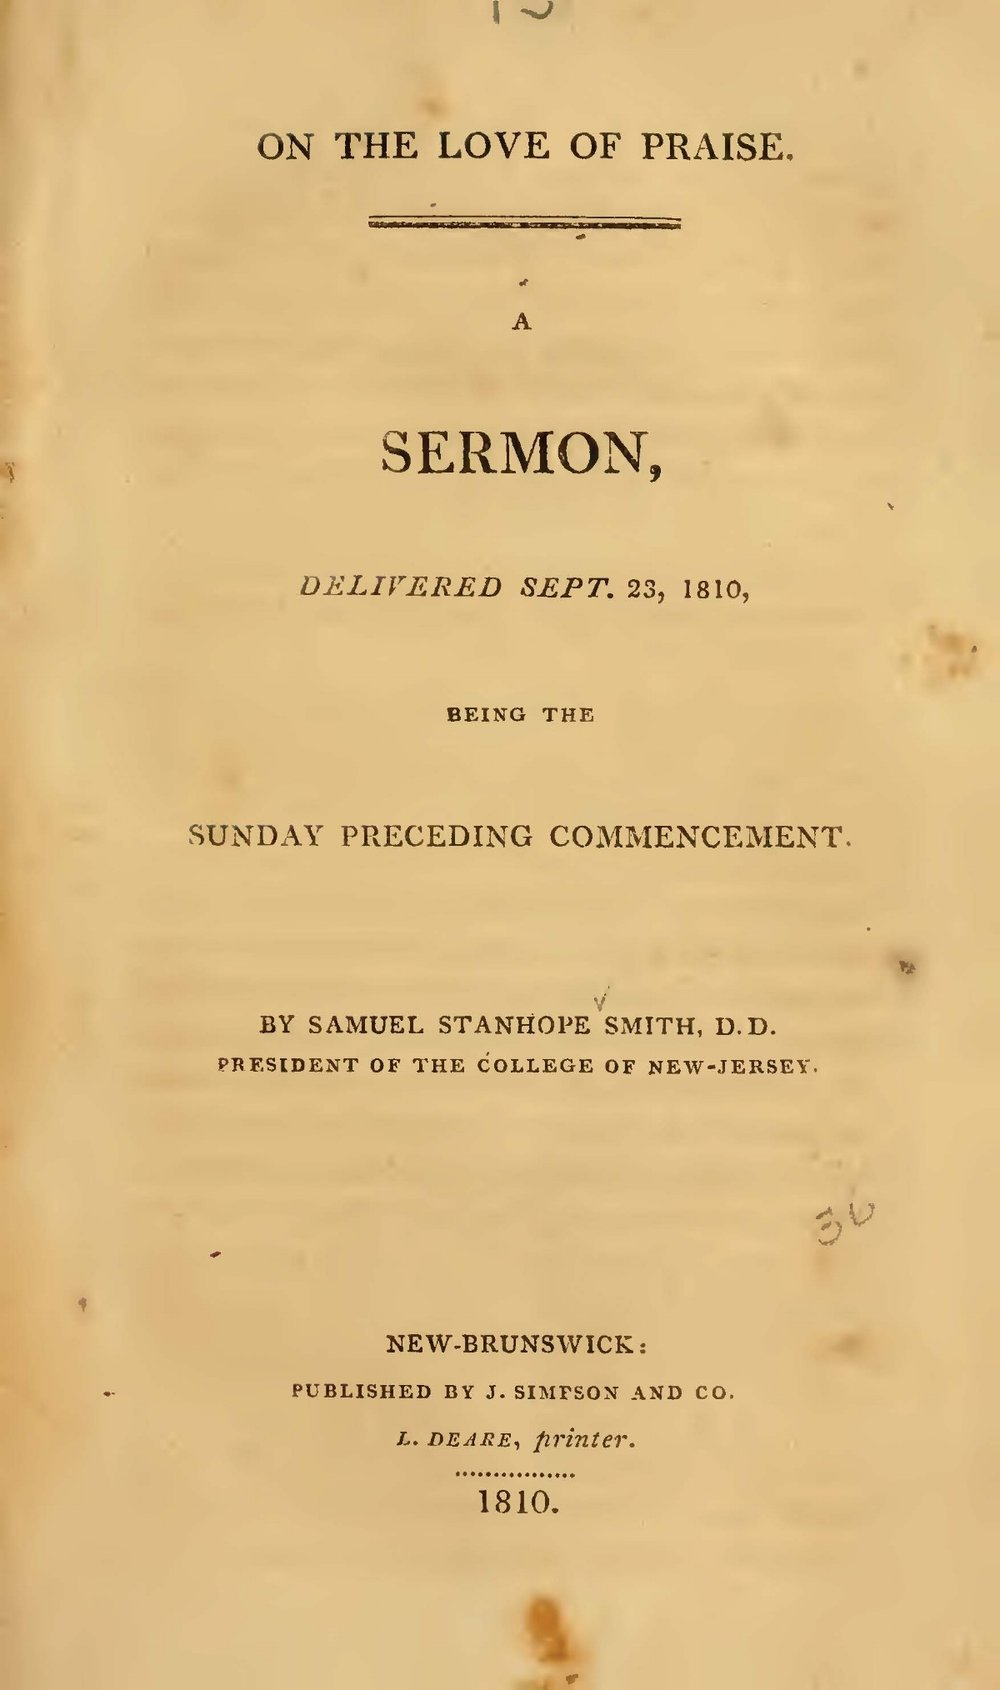 Smith, Samuel Stanhope, On the Love of Praise Title Page.jpg